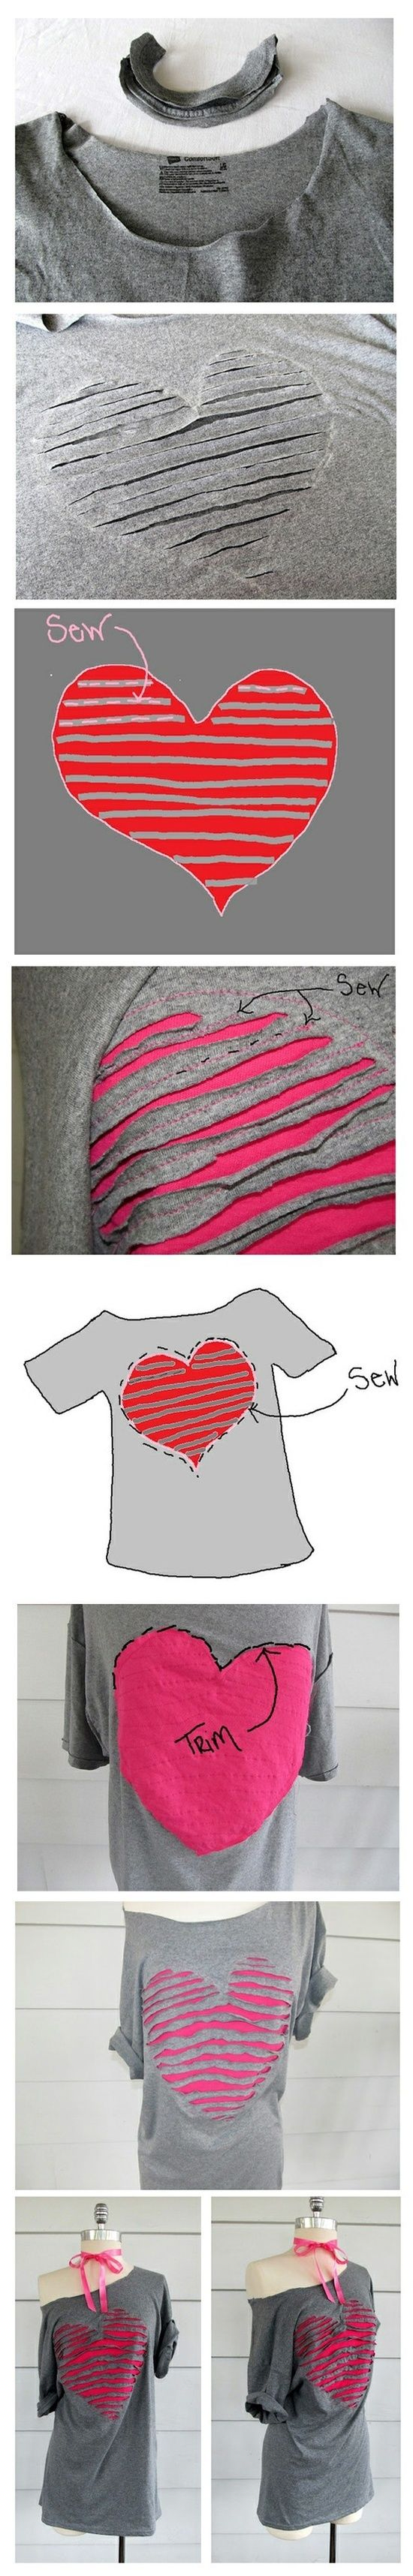 Revamp Old T-shirt into Love-ly One